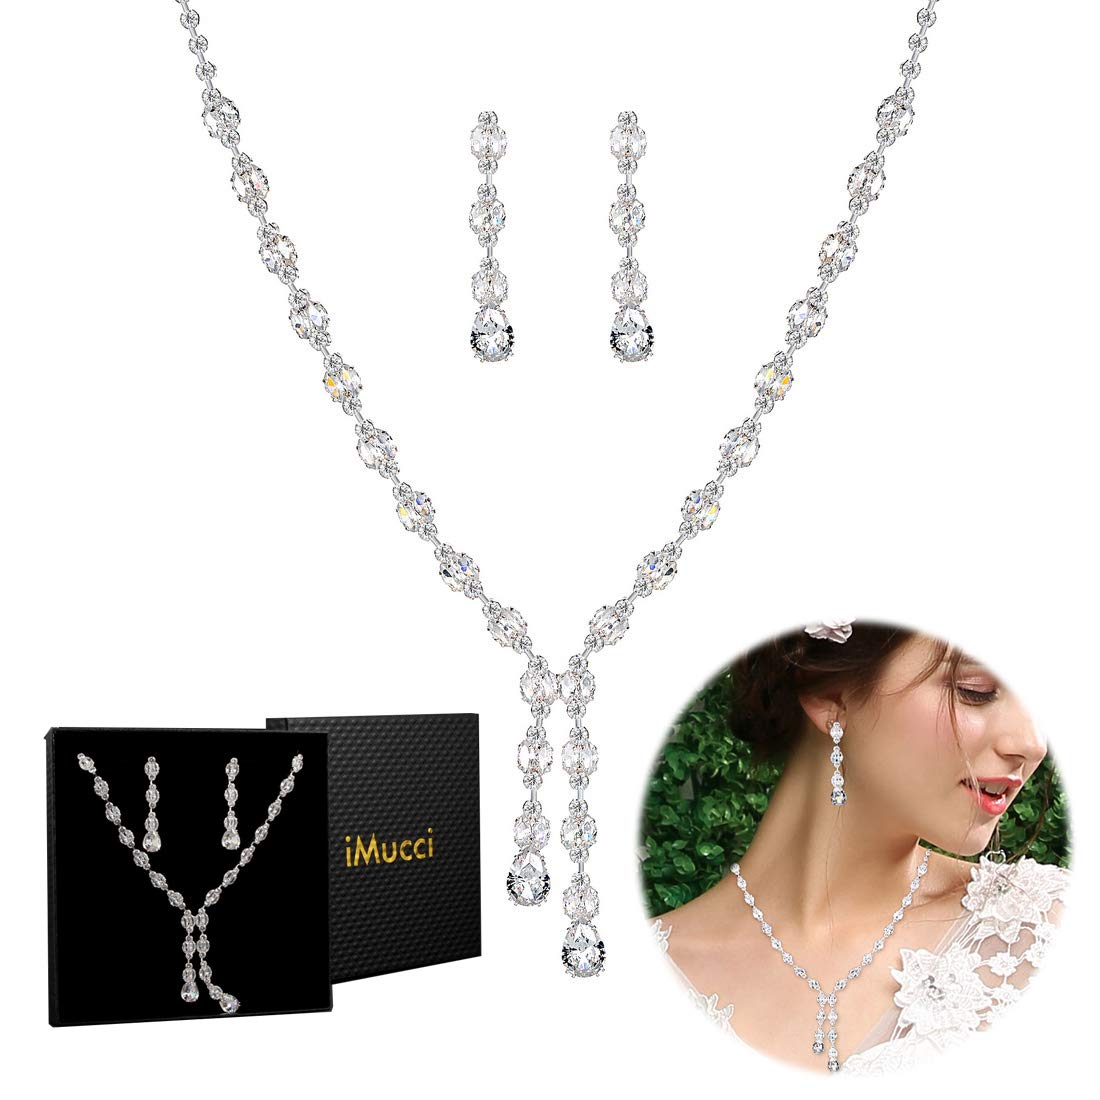 iMucci Zircon Crystal Wedding Jewelry Set - Necklace and Silver Needle Earrings for Party Prom Bridal Bridesmaid with Black Gift Box WS0517